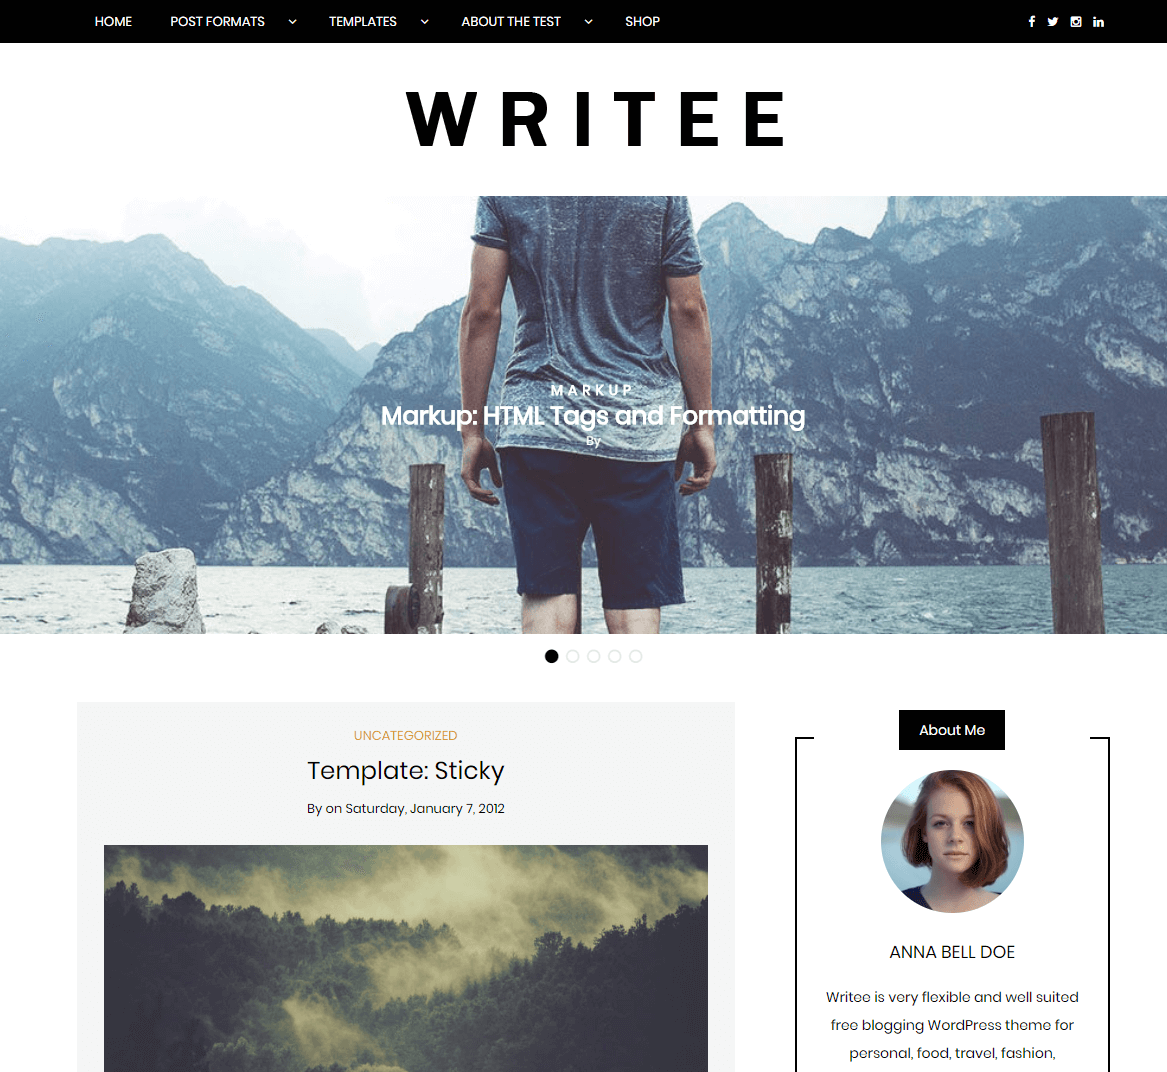 Writee is a free WordPress theme for a blog